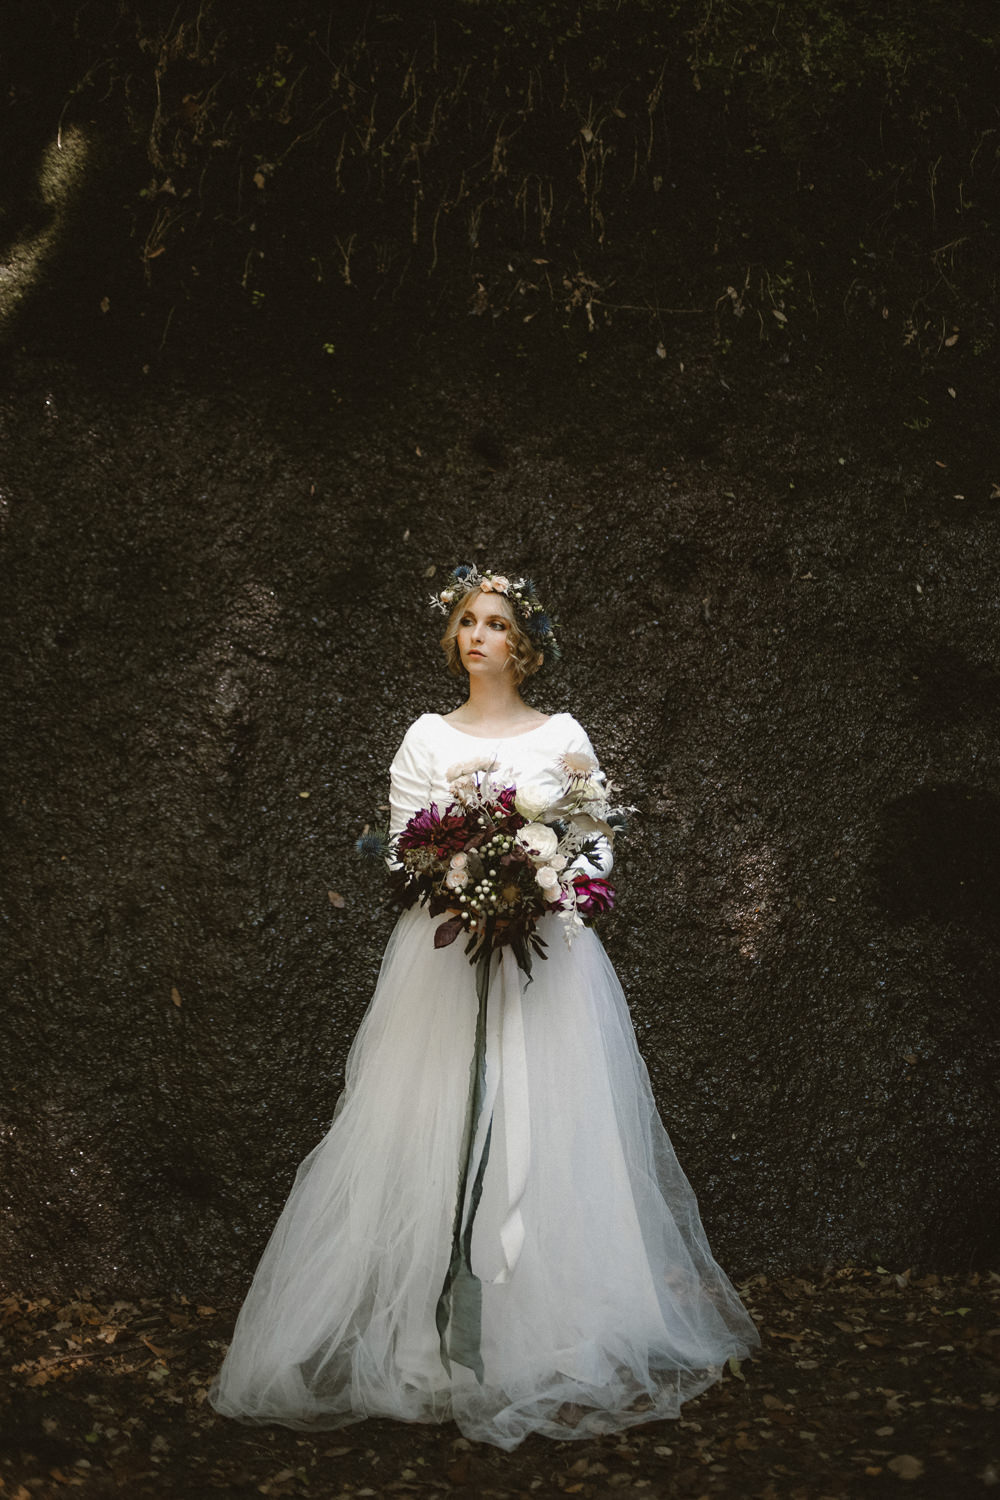 Dress Gown Bride Bridal Long Sleeves Tulle Skirt Ethereal Candlelit Wedding Ideas Ortica Wedding